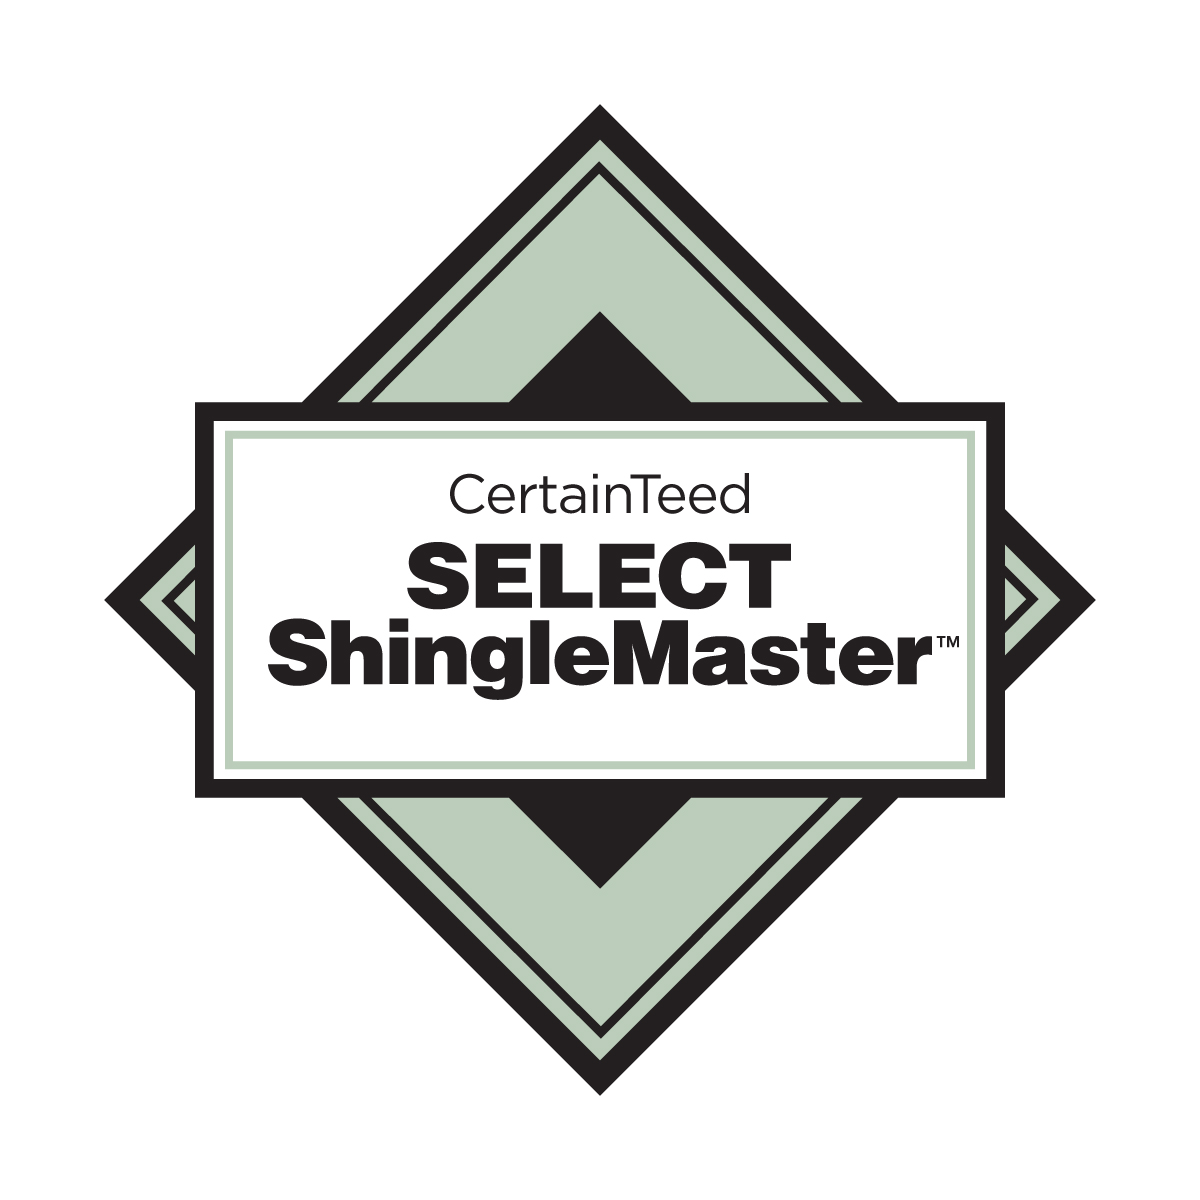 CertainTeed Select ShingleMaster logo